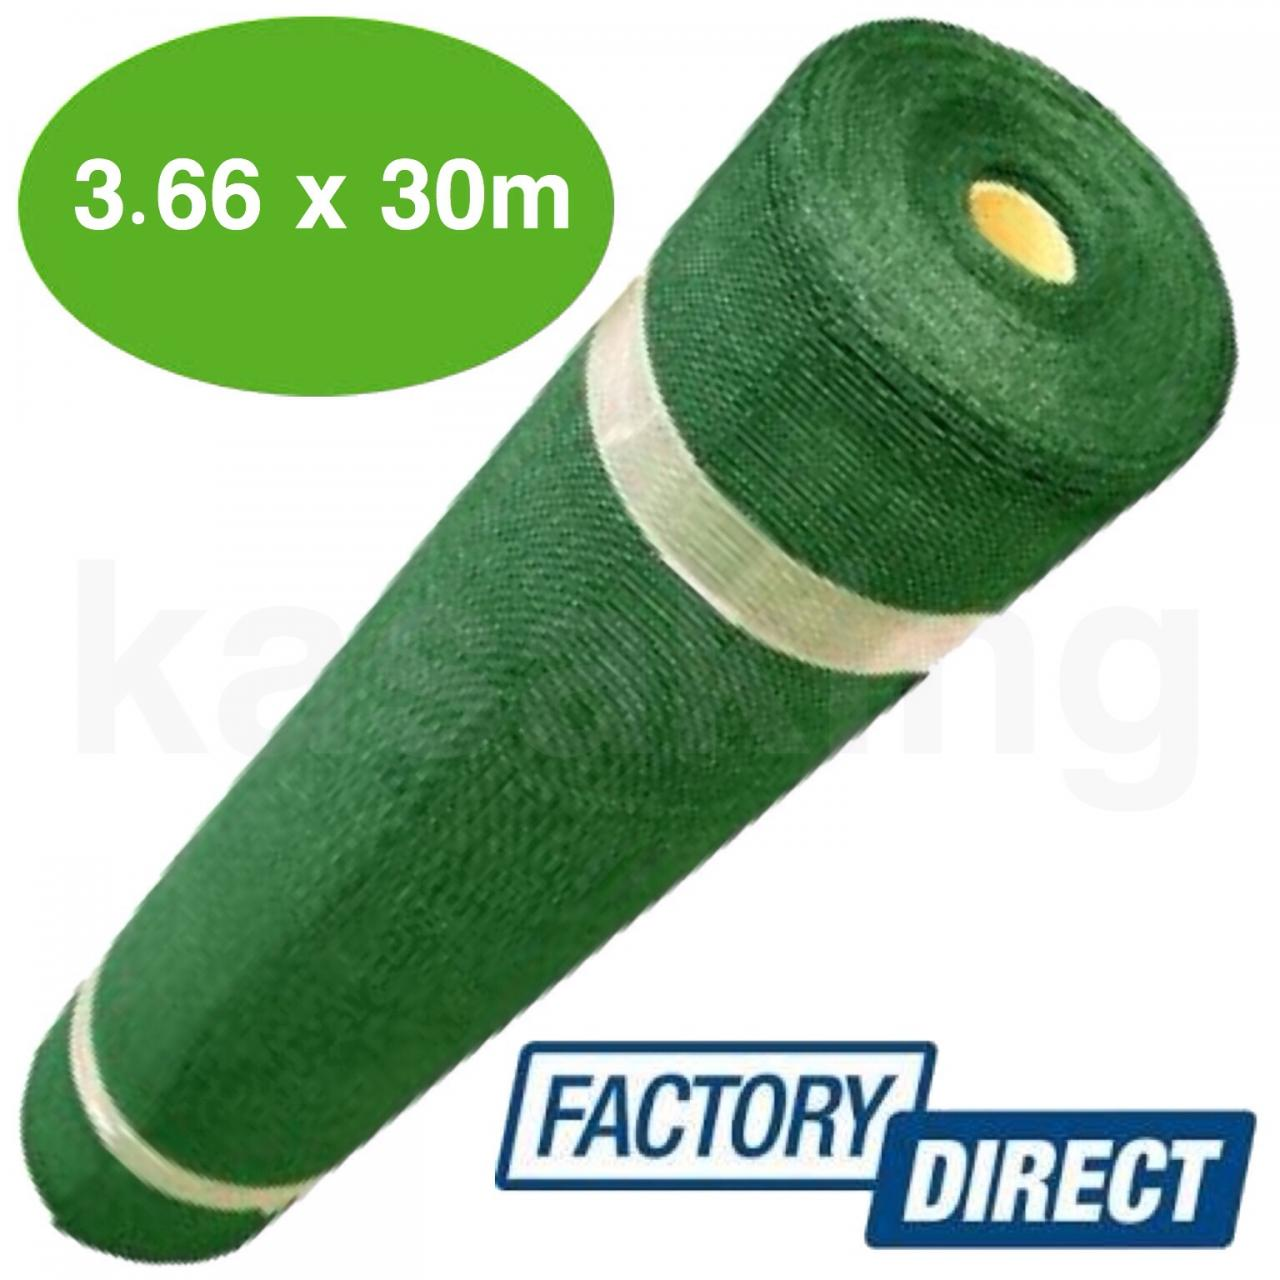 3.66 x 30m green 90% shade cloth